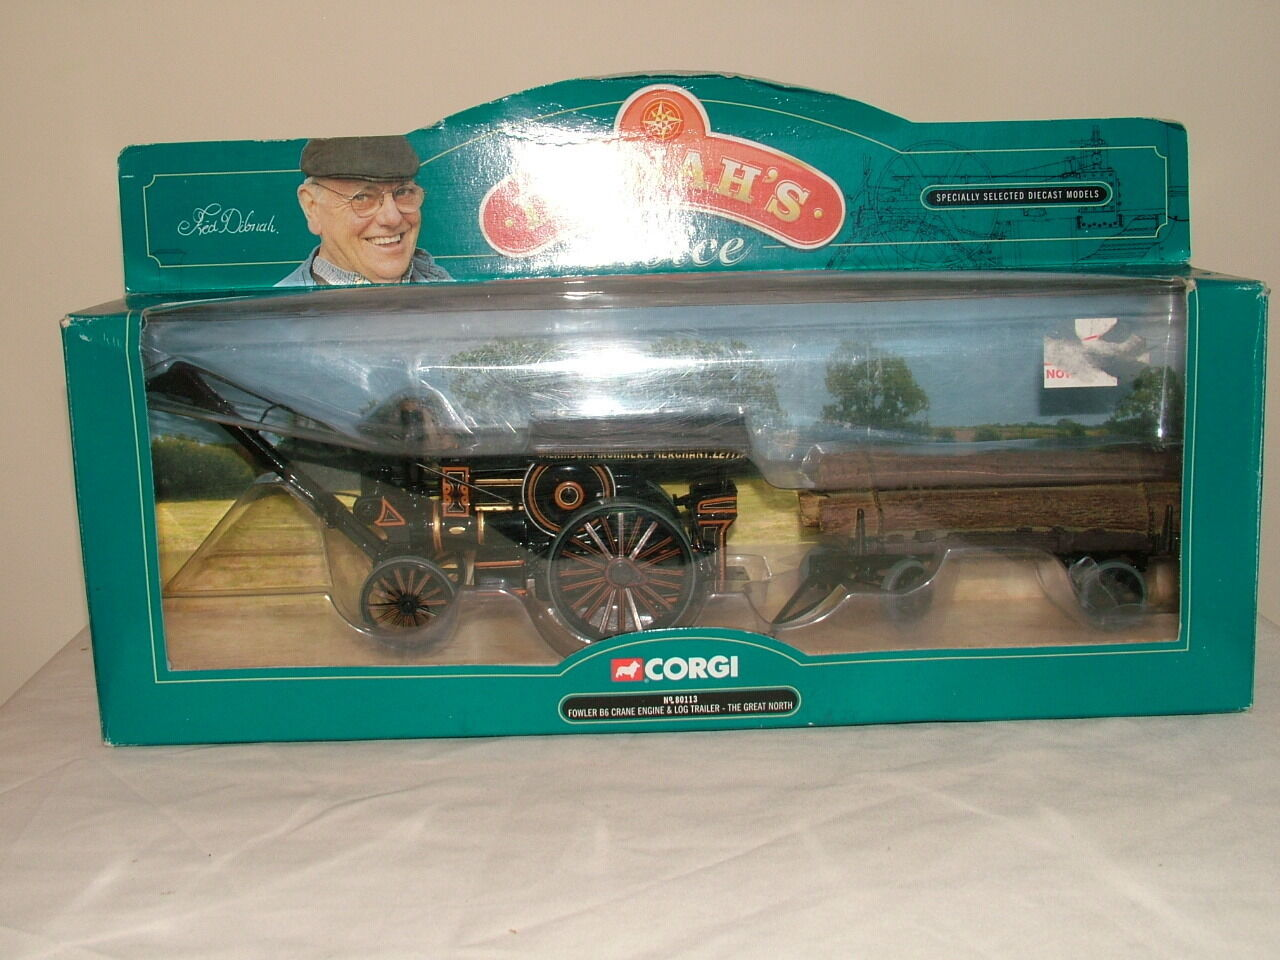 Corgi Vintage Glory No 80113 F Dibna set Fowler and Log load VNMB